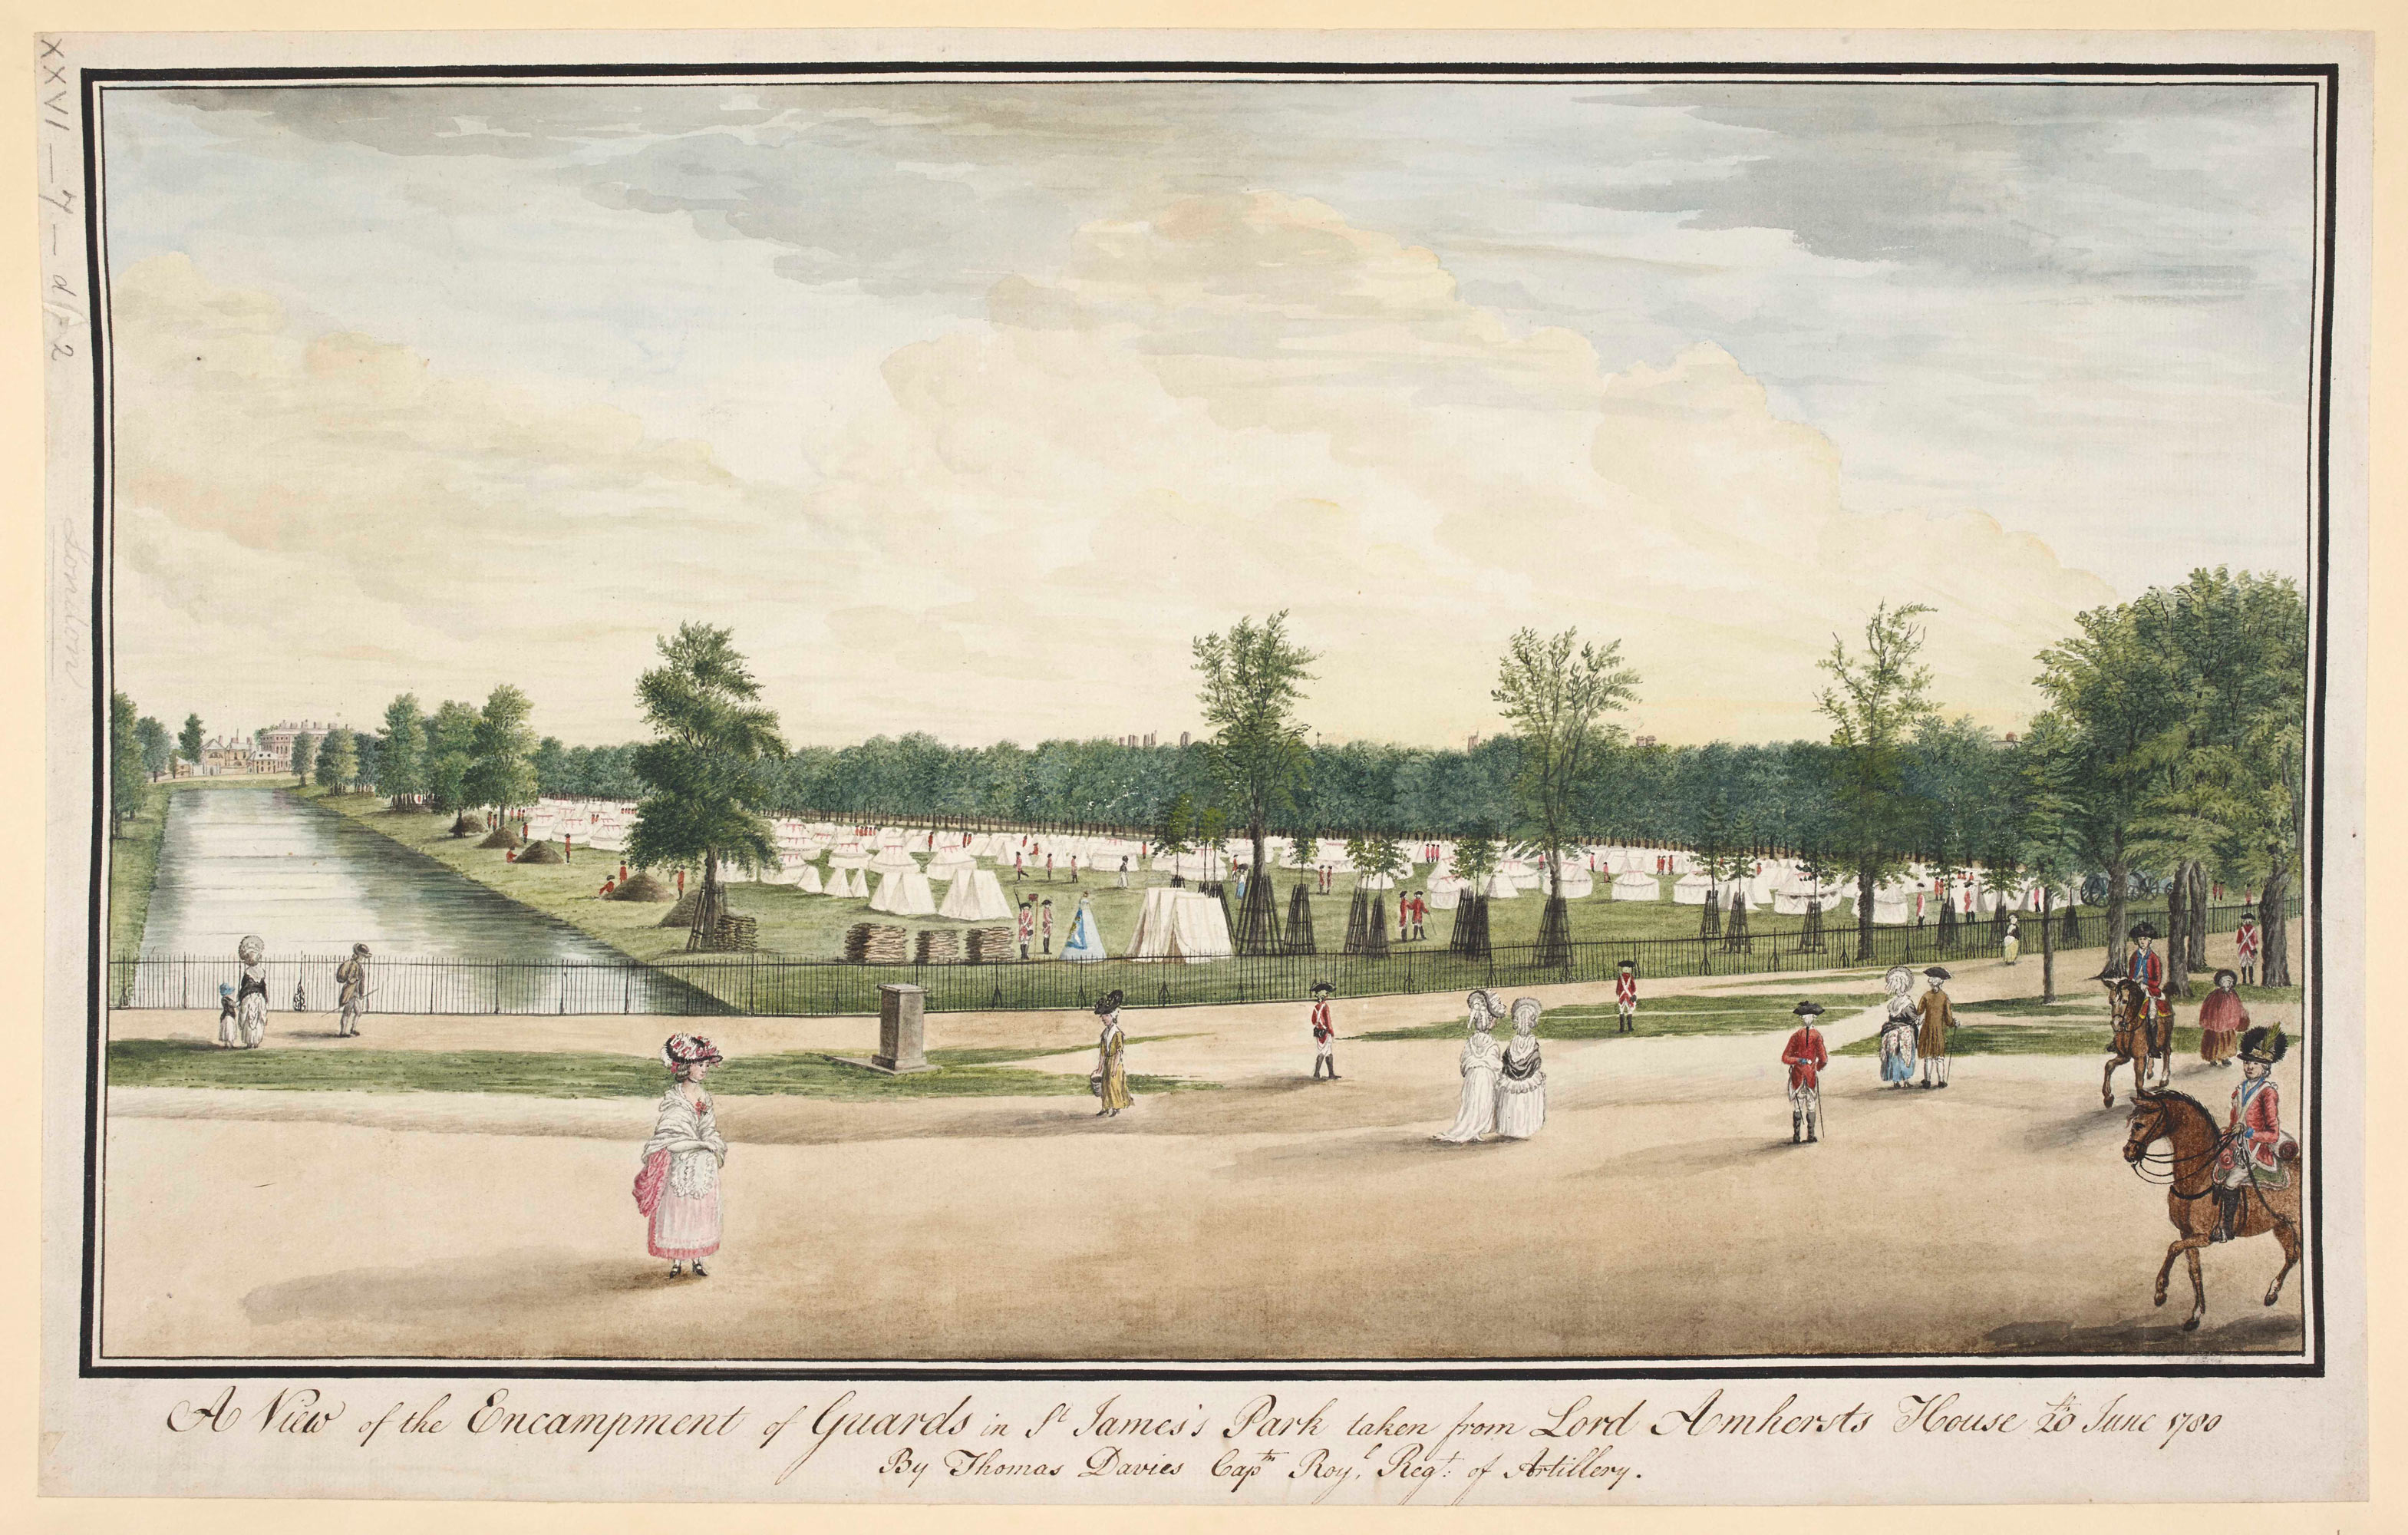 View of the Encampment of Guards in St James's Park